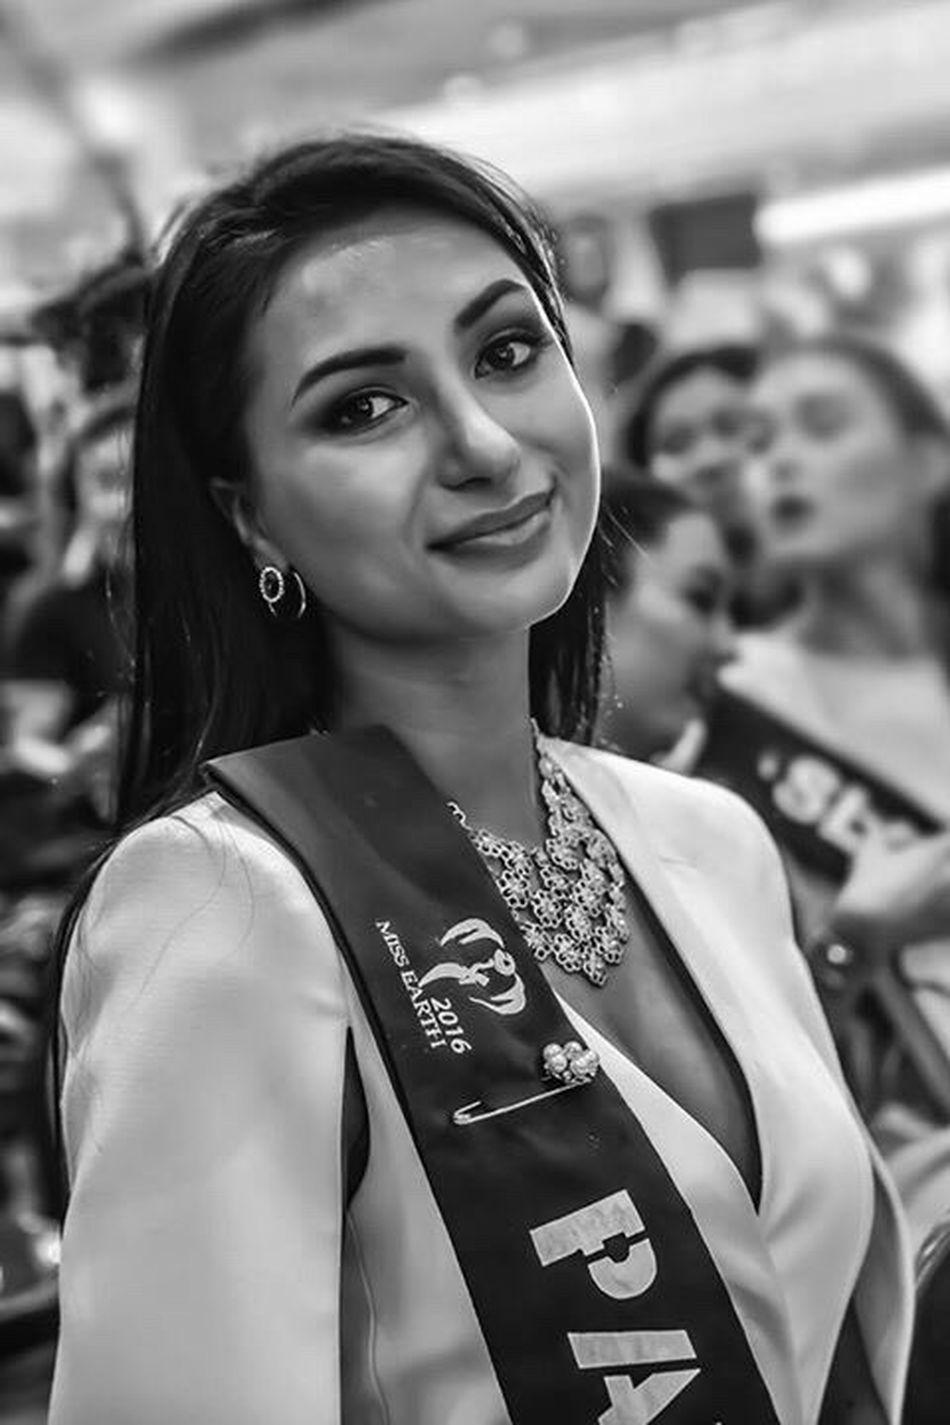 During the press presentation of the Miss Earth 2016 candidates at the SM City, Quezon City, Philippines. Miss Earth Pakistan. Portrait Beauty Beautyqueen Missearth Missearth2016 MissPakistan MissEarthPakistan2016 Philippines Pilipinas Beautycontest Quezoncity Blackandwhite Photography Pakistan Elegant